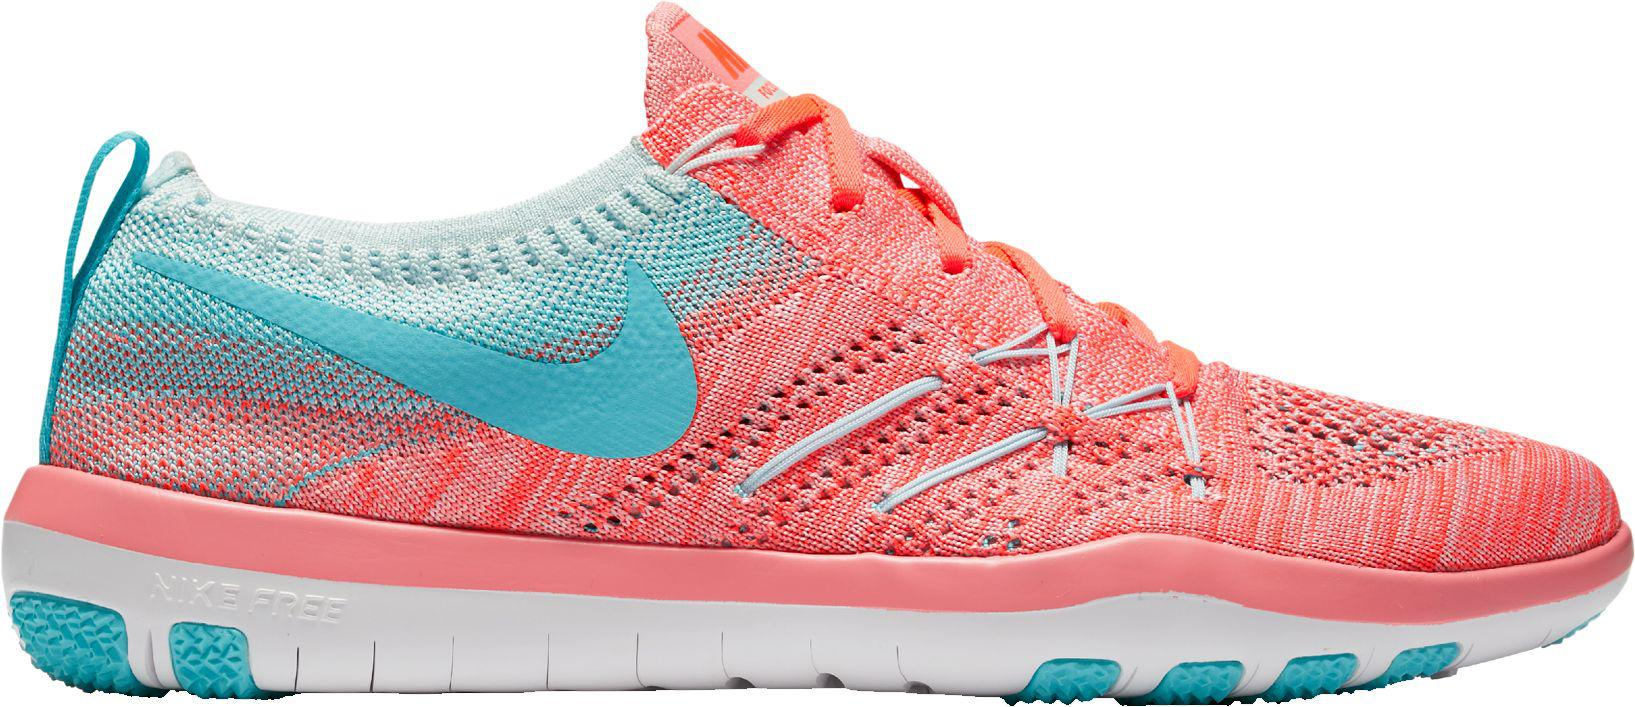 new concept 0c09d 83b98 Women's Free Tr Focus Flyknit Training Shoes